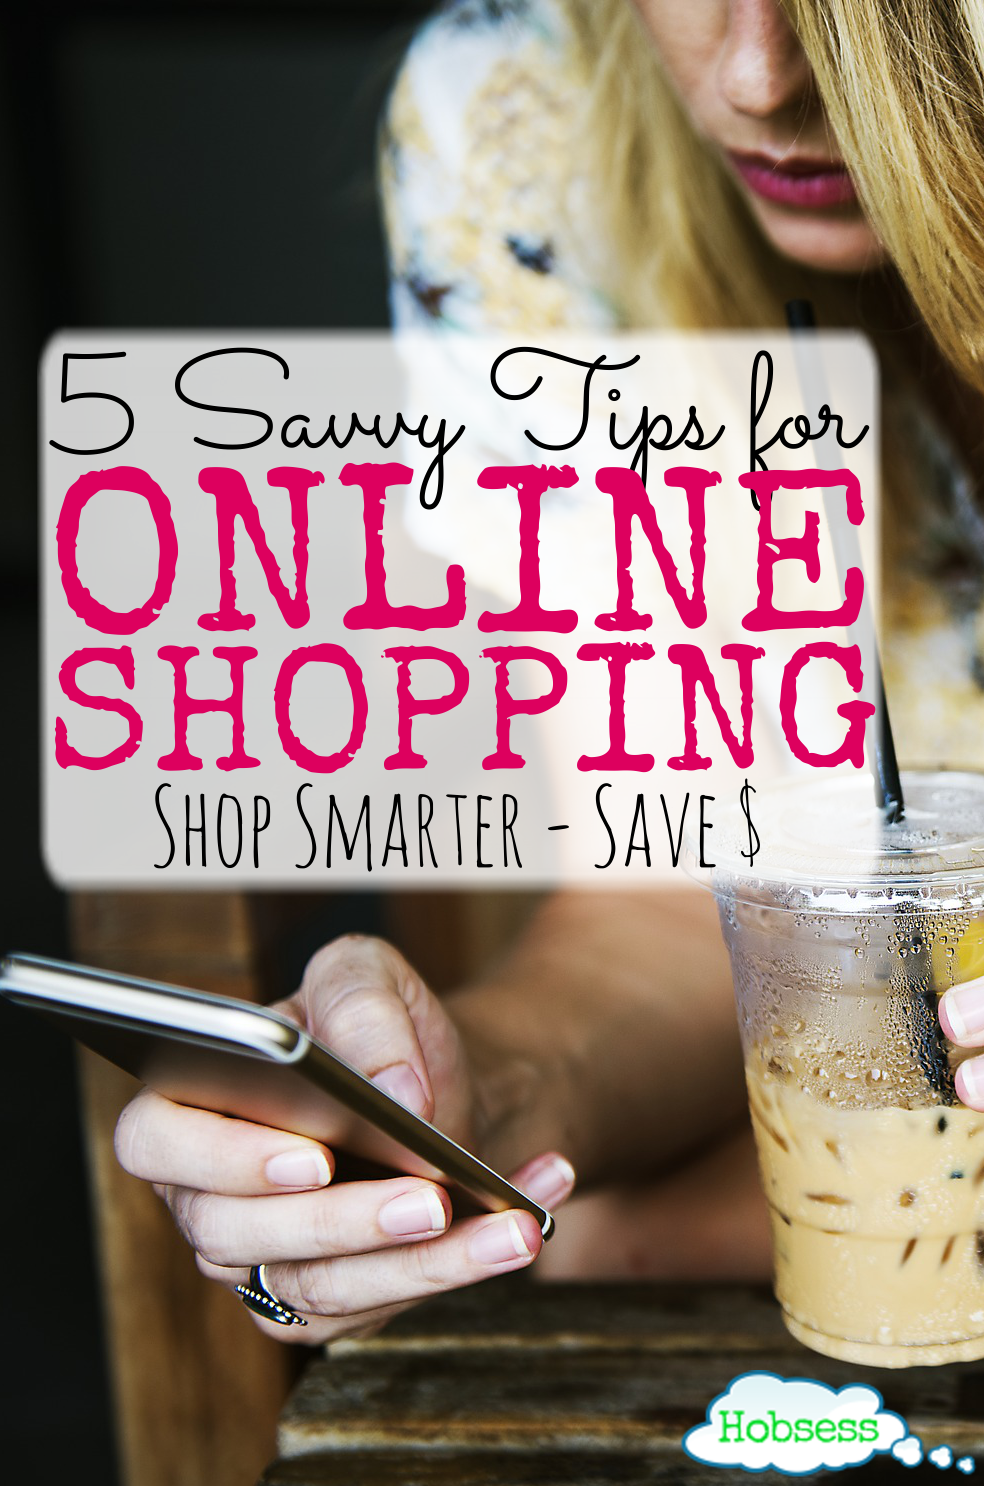 Love shopping online? Follow these 5 easy money-saving tips.